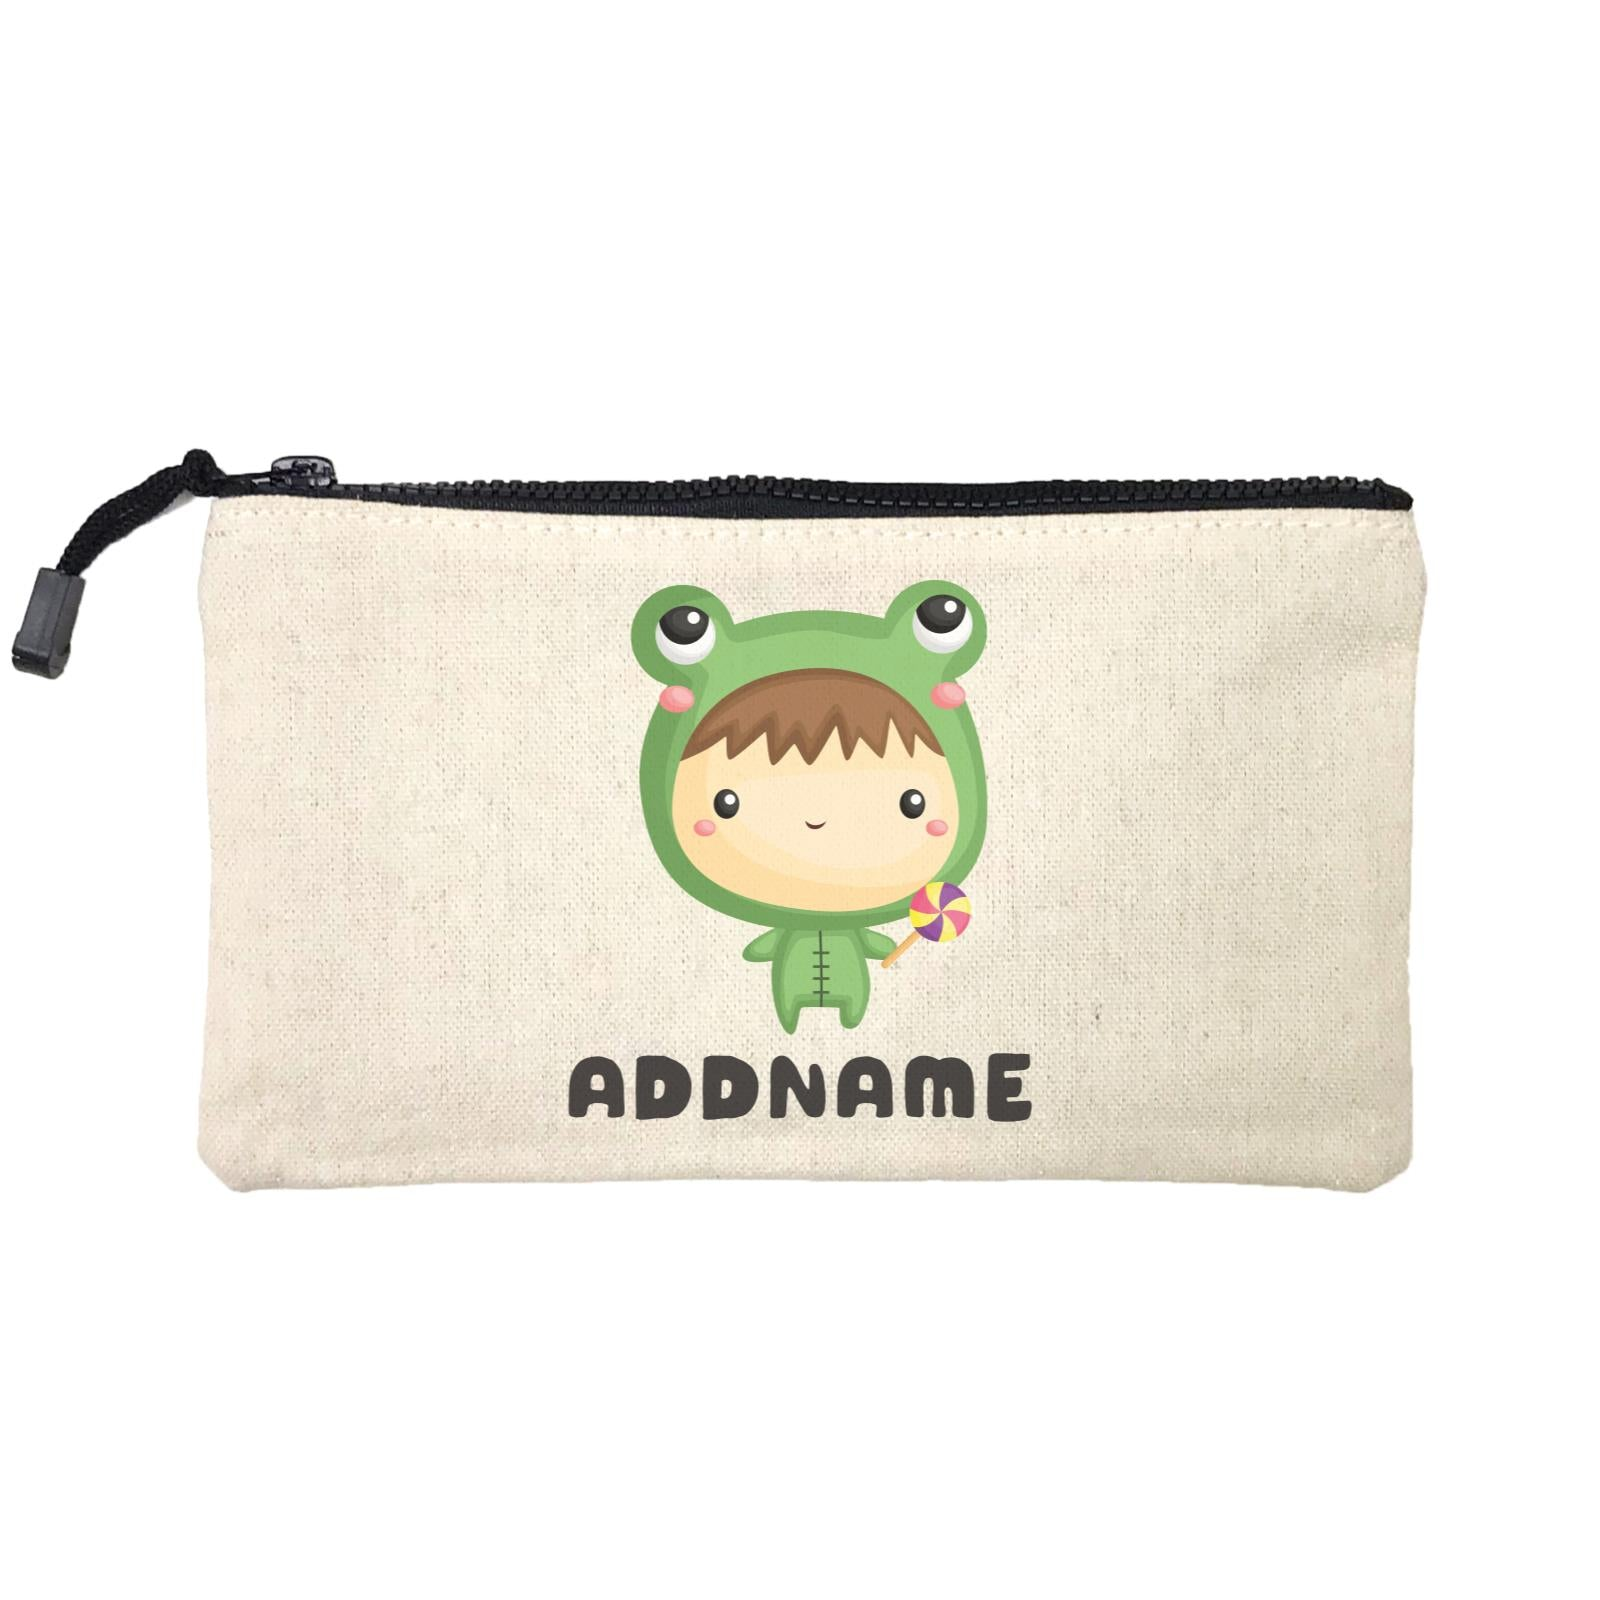 Birthday Frog Baby Boy Wearing Frog Suit Holding Lolipop Addname Mini Accessories Stationery Pouch